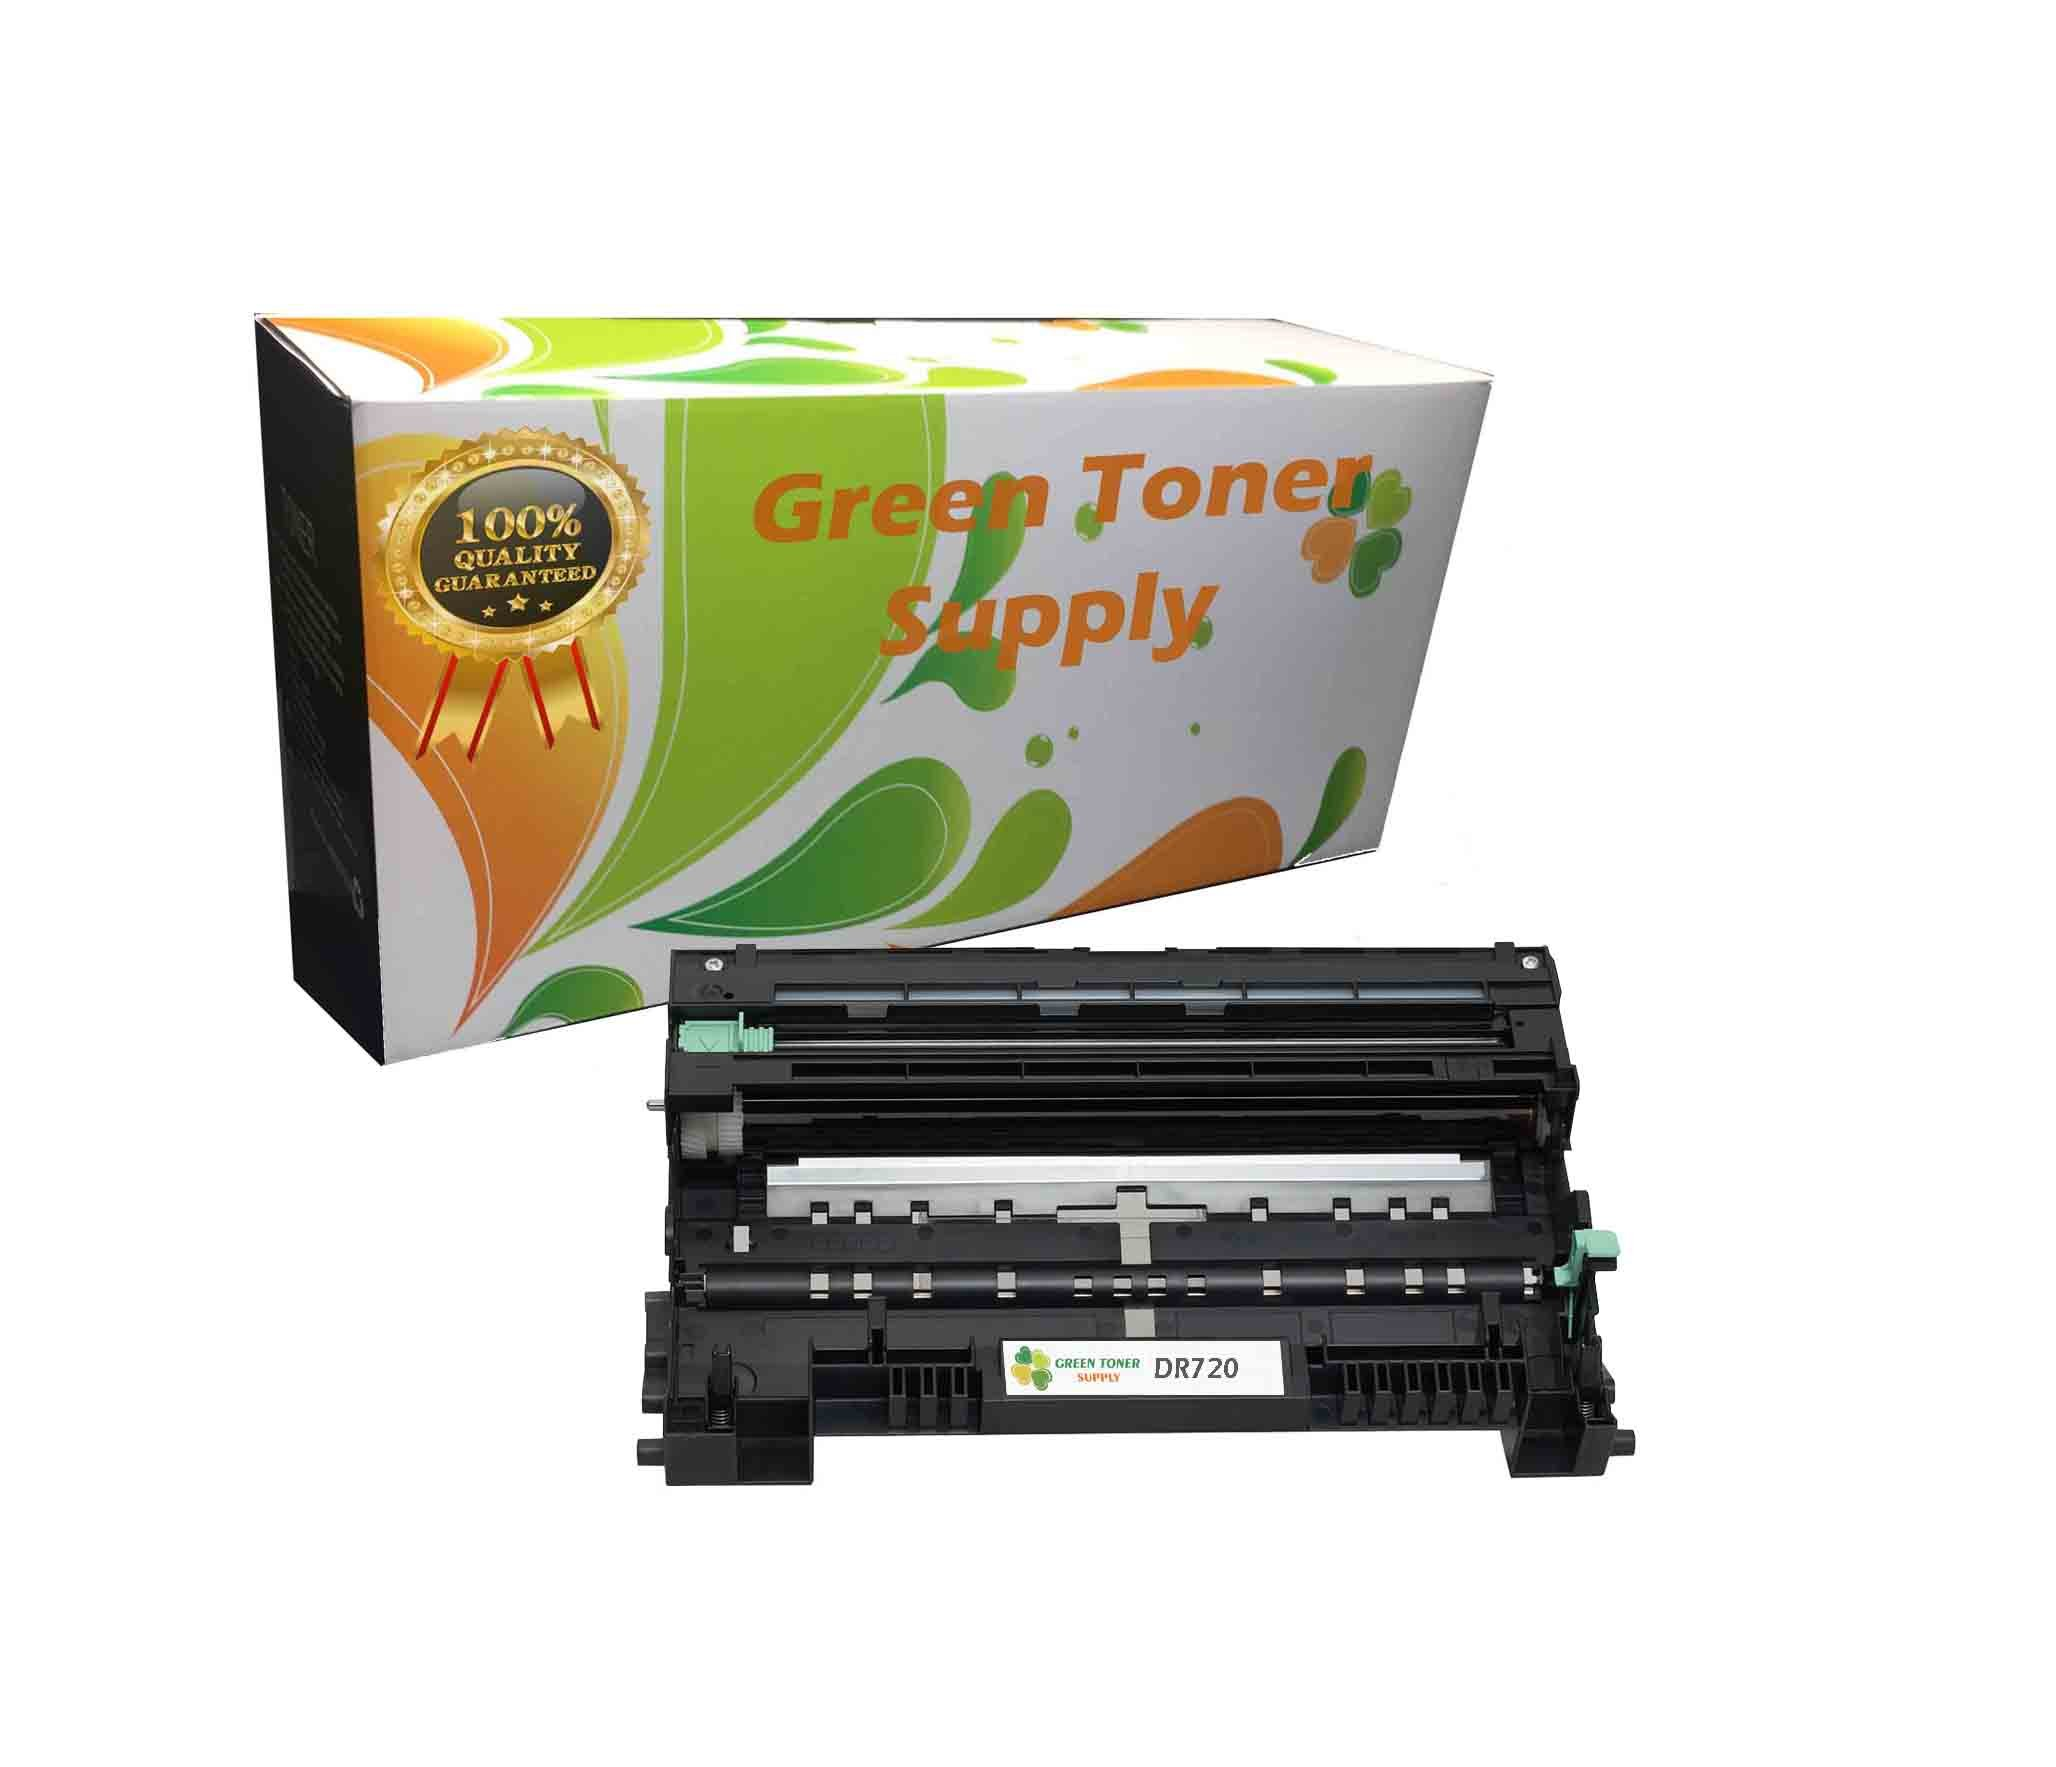 Green Toner Supply Compatible Drum Cartridge Replacement for Brother DR720 (Black, 1-Pack)